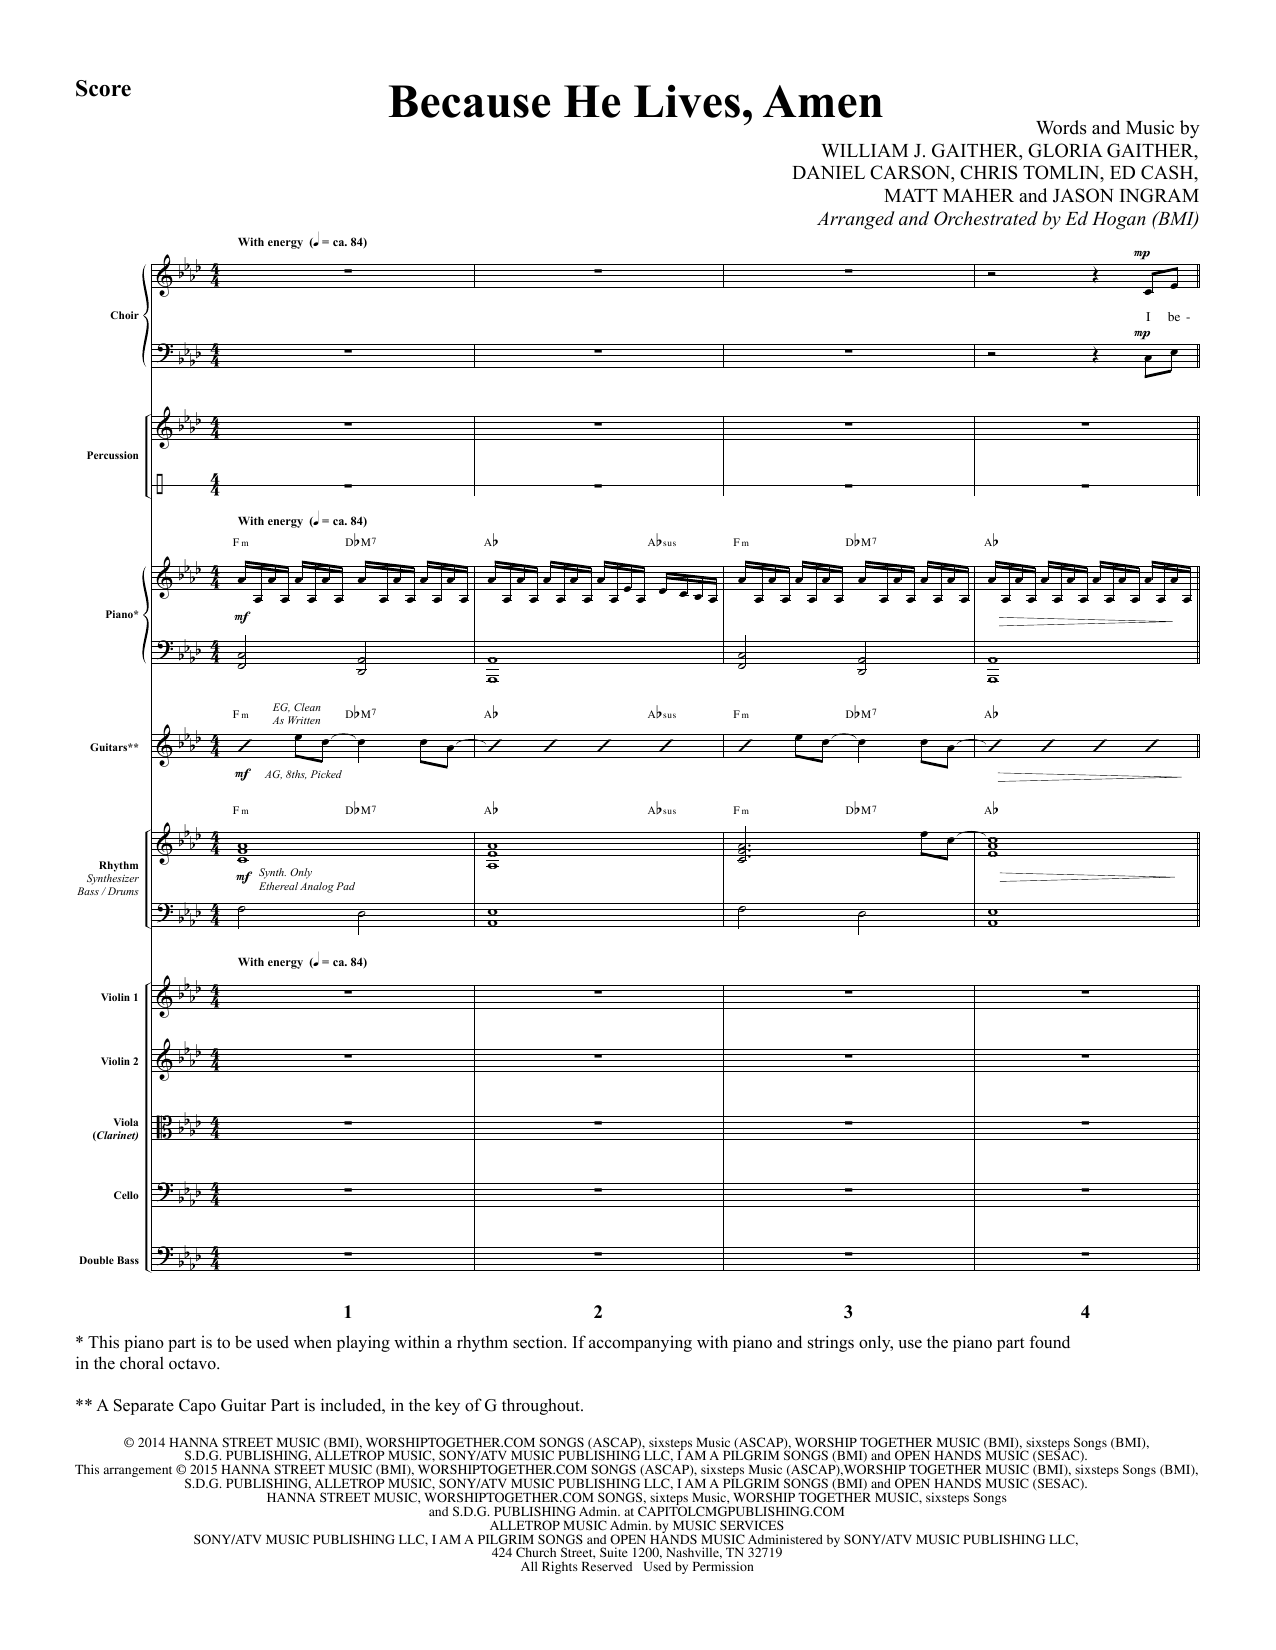 Because He Lives, Amen (COMPLETE) sheet music for orchestra/band by Ed Hogan, Chris Tomlin, Daniel Carson, Ed Cash, Gloria Gaither, Jason Ingram, Matt Maher and William J. Gaither. Score Image Preview.